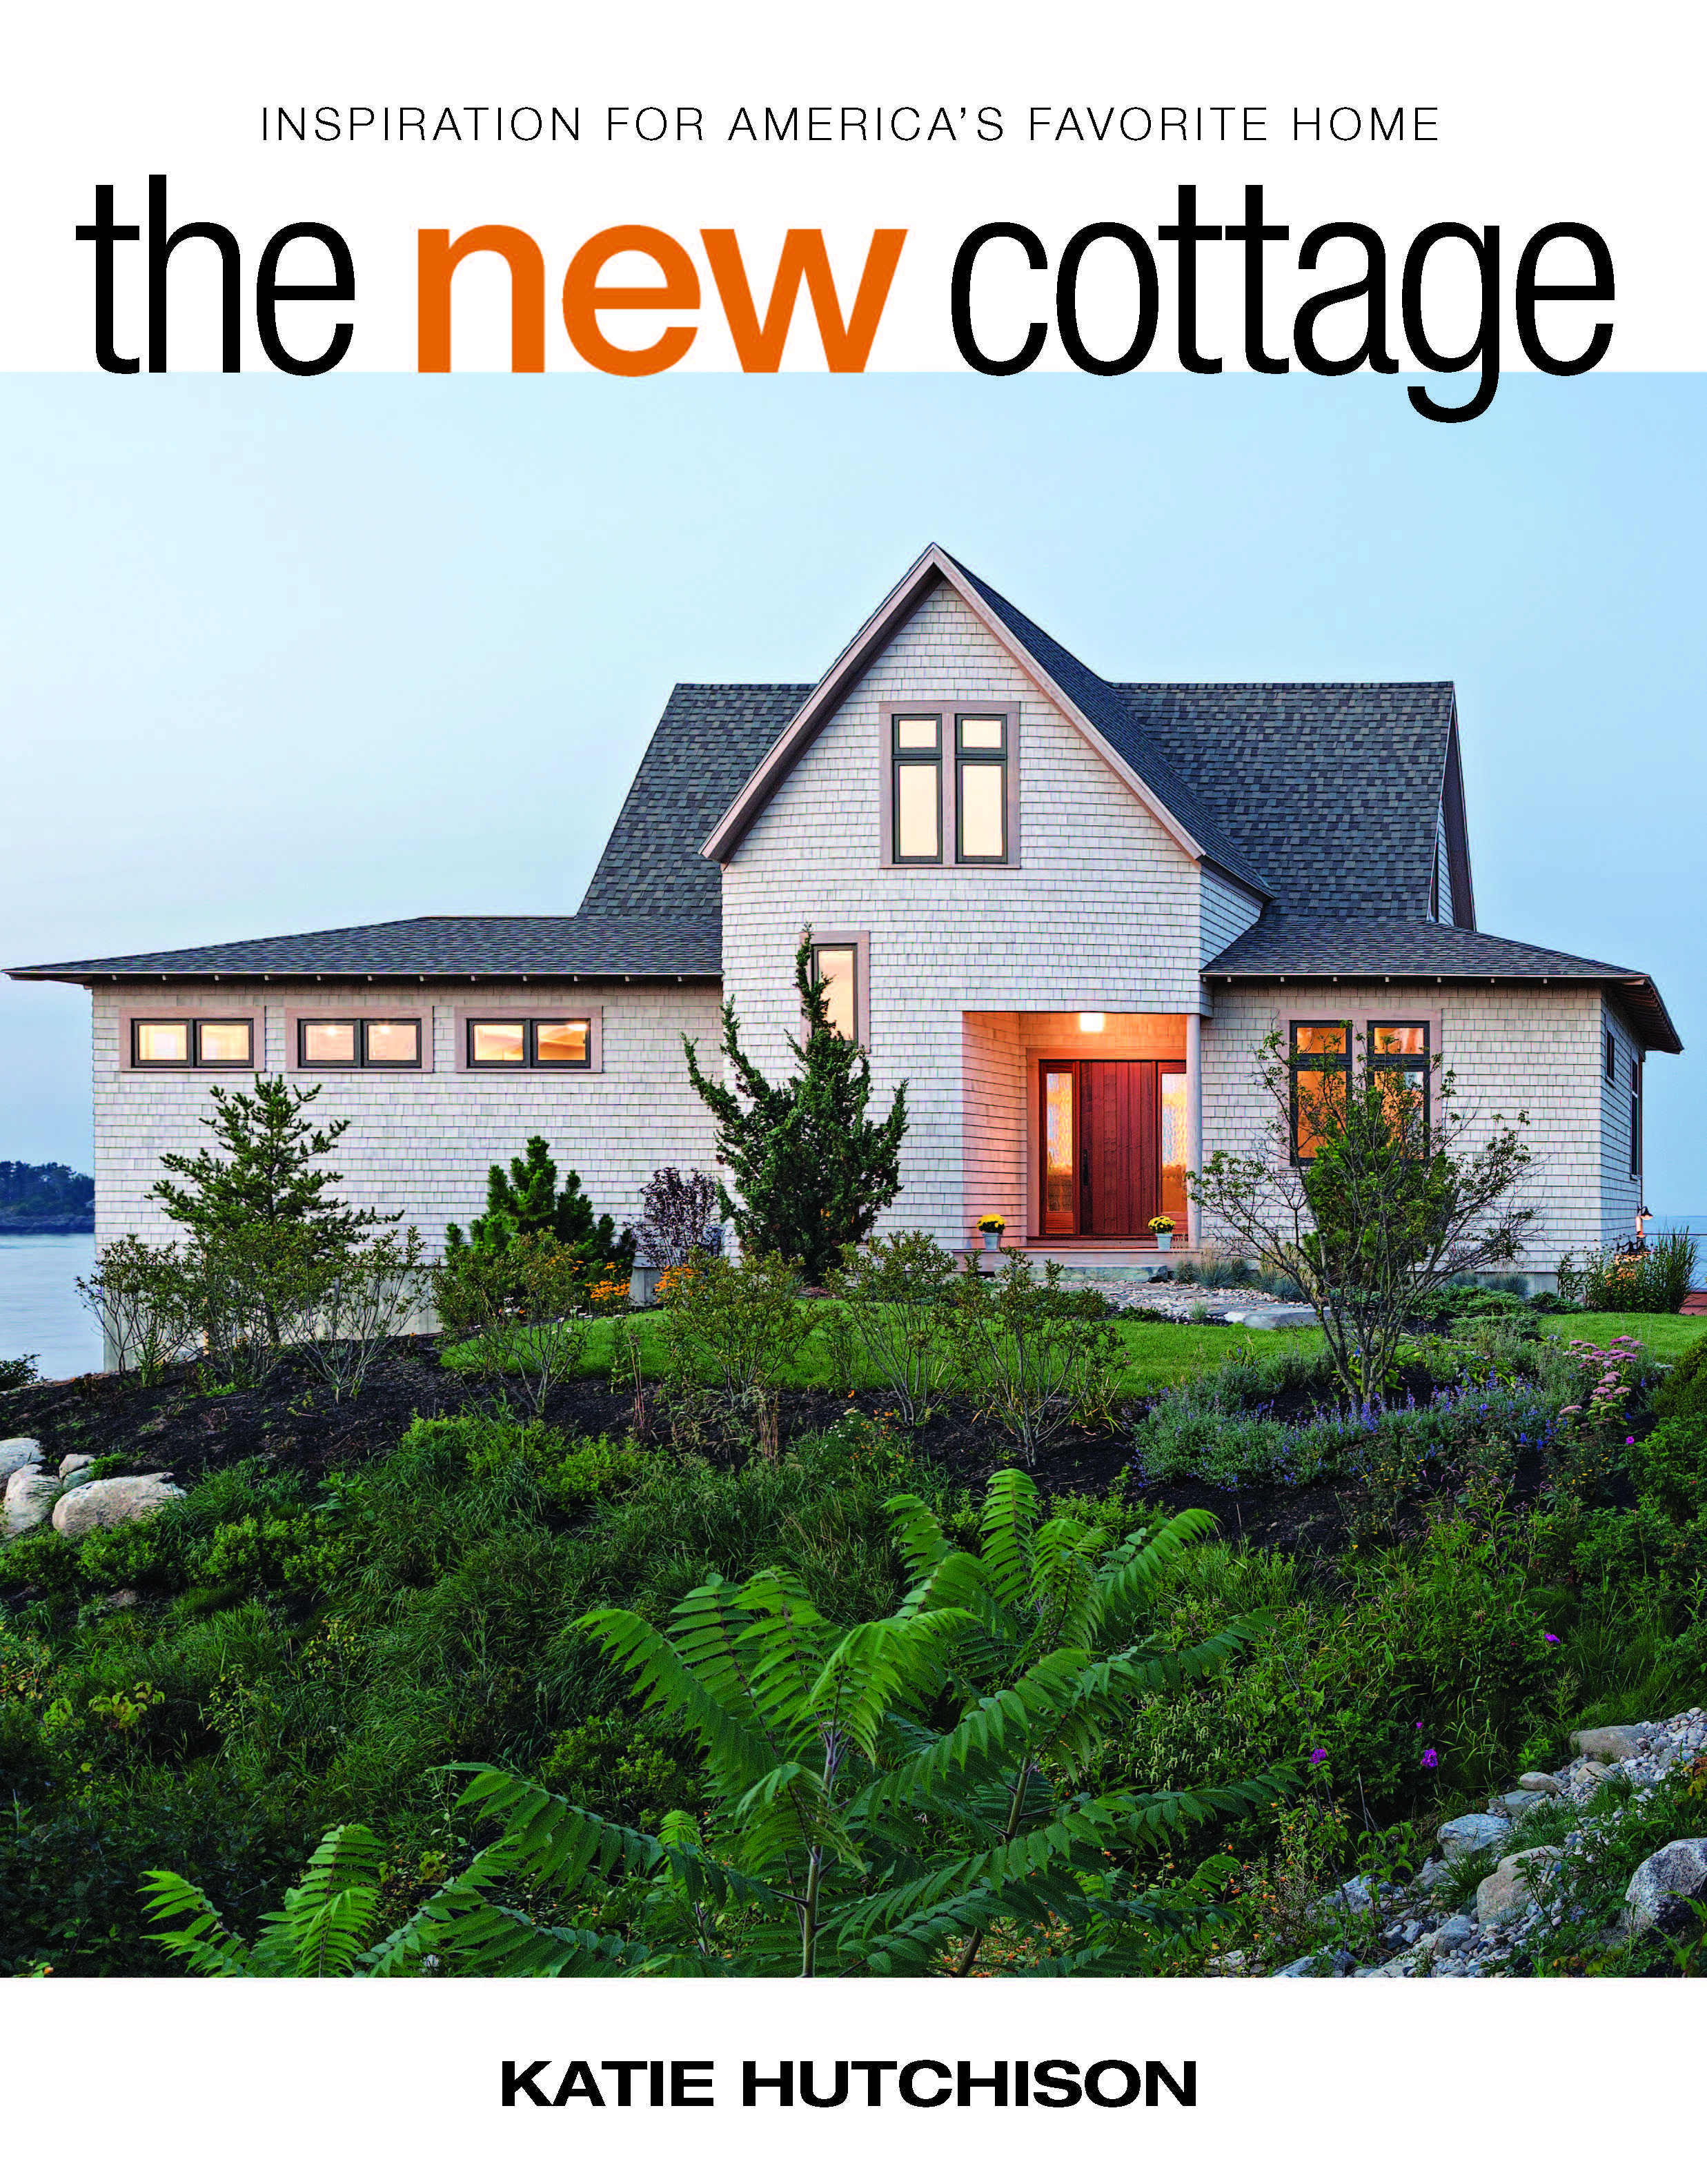 HUTCHISON_Cottage_FrontCover_071654.jpg